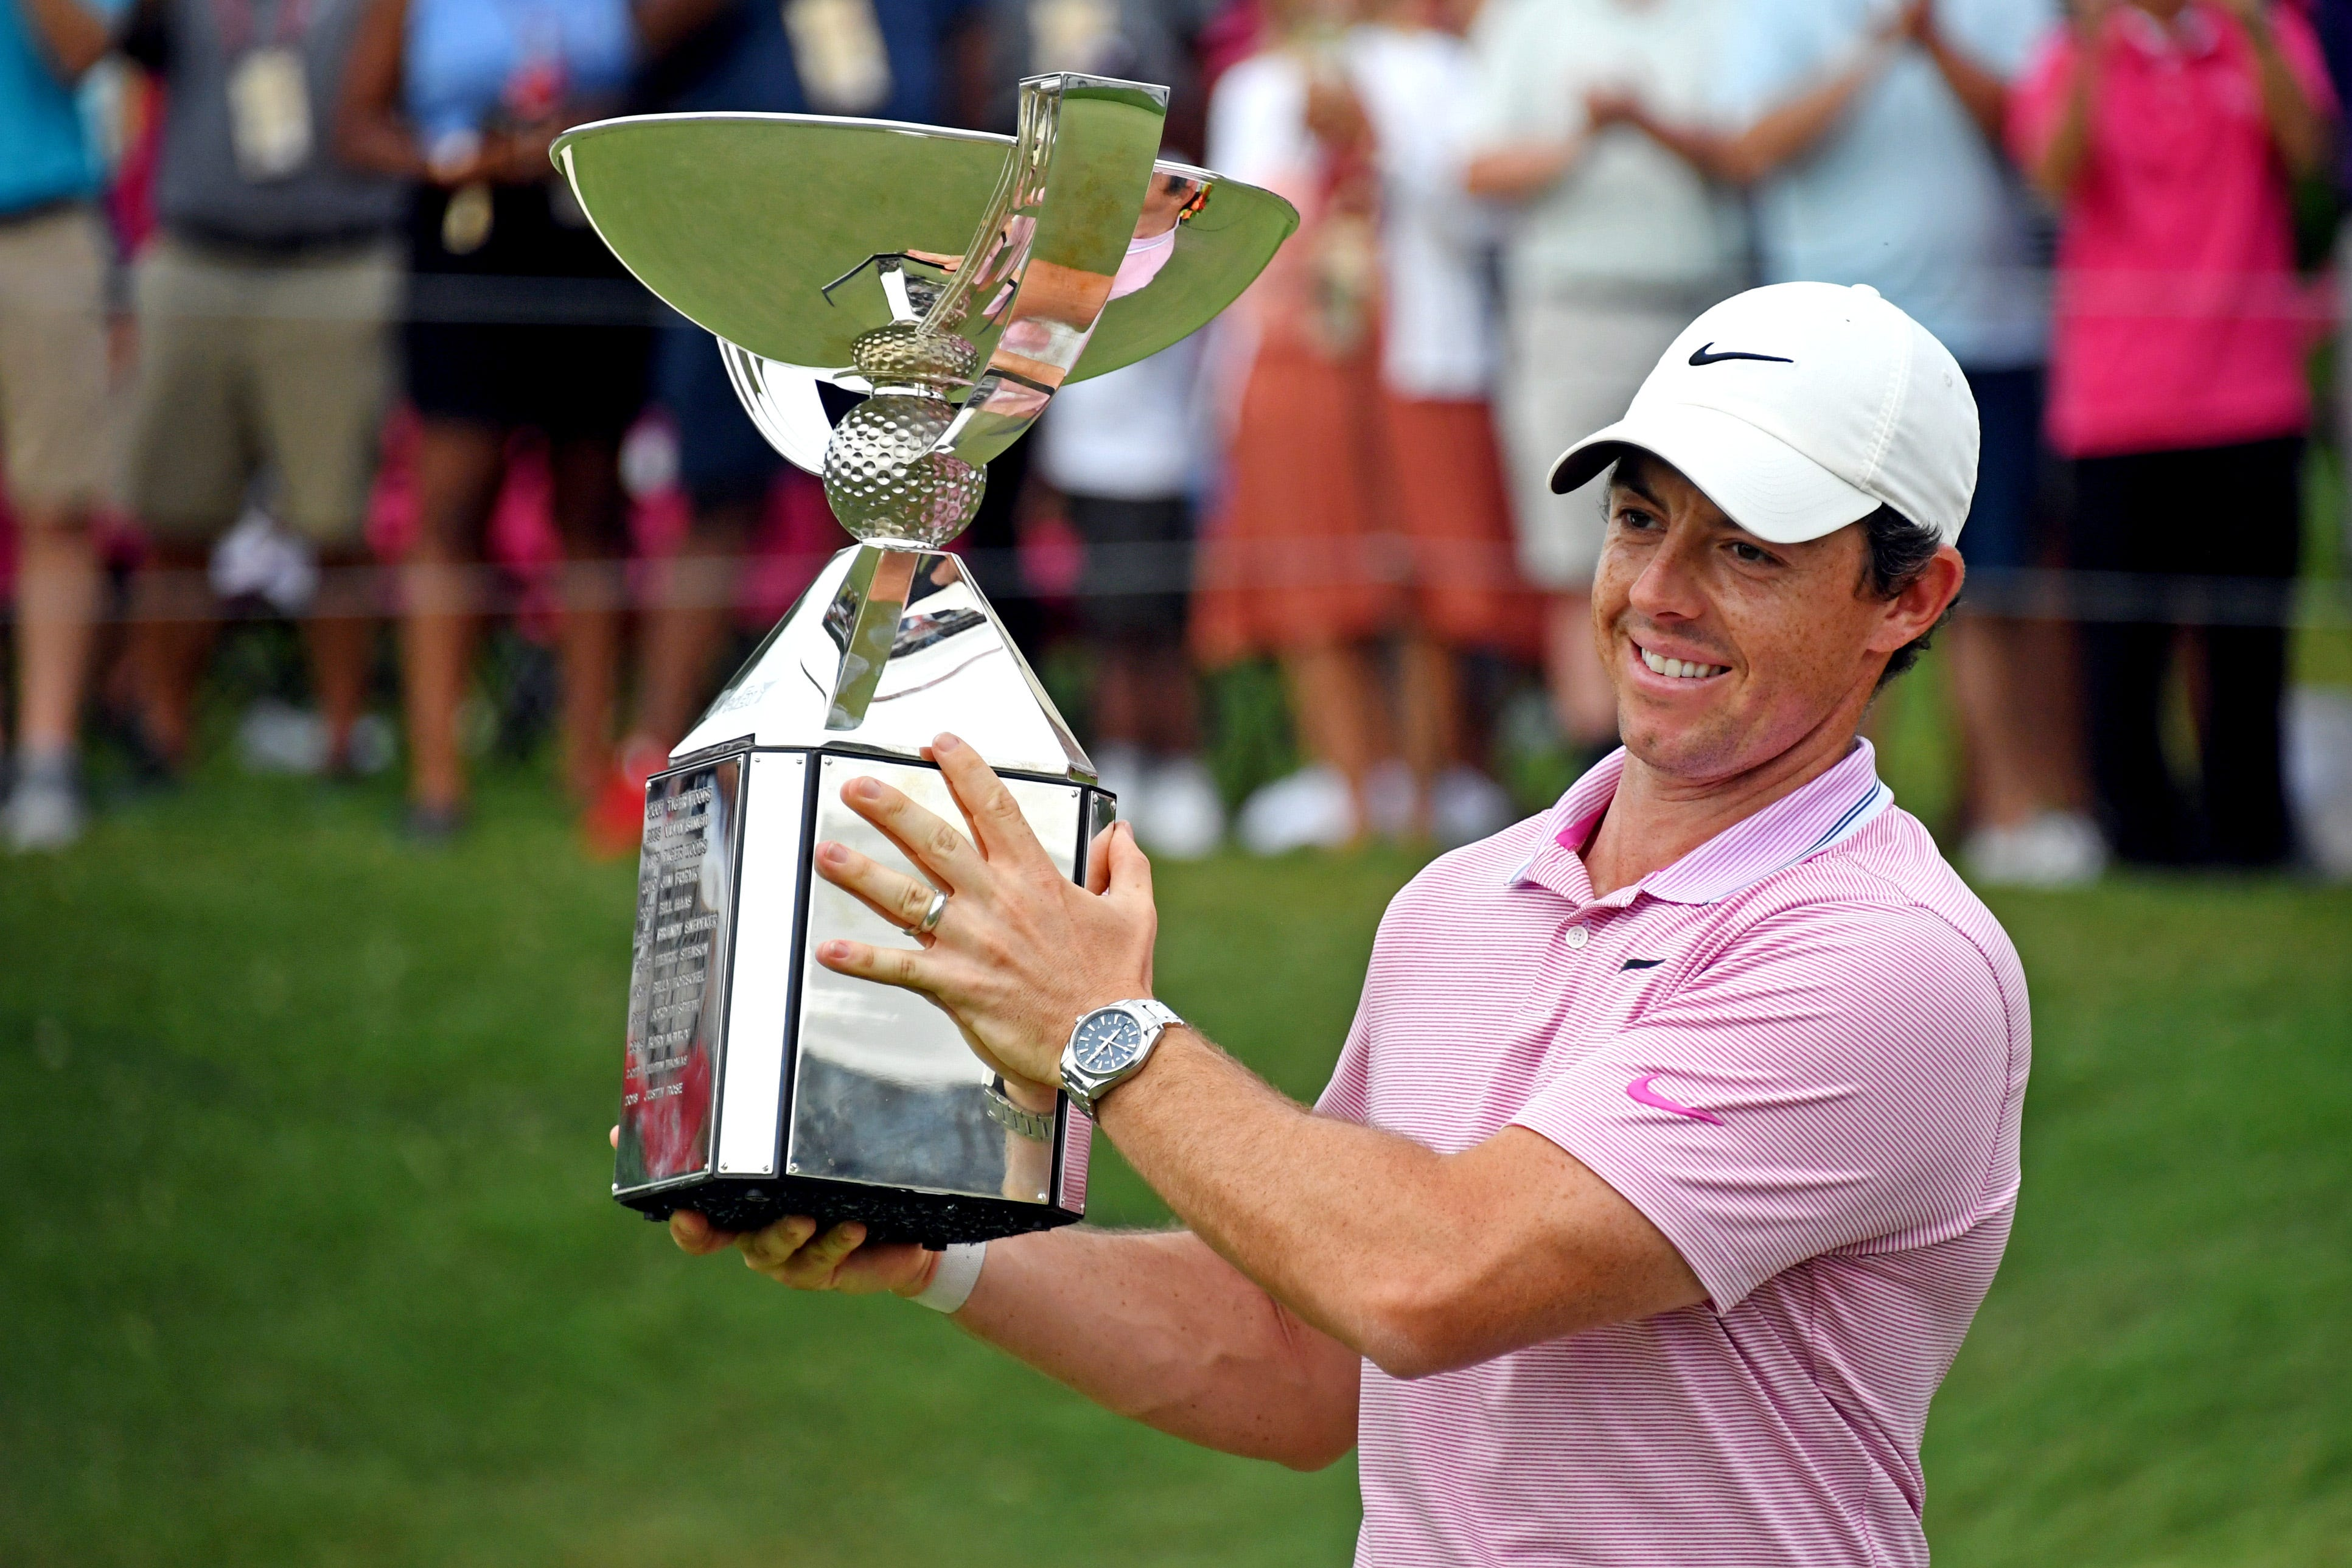 Brooks Koepka edges Rory McIlroy for PGA of America Player of the Year Award